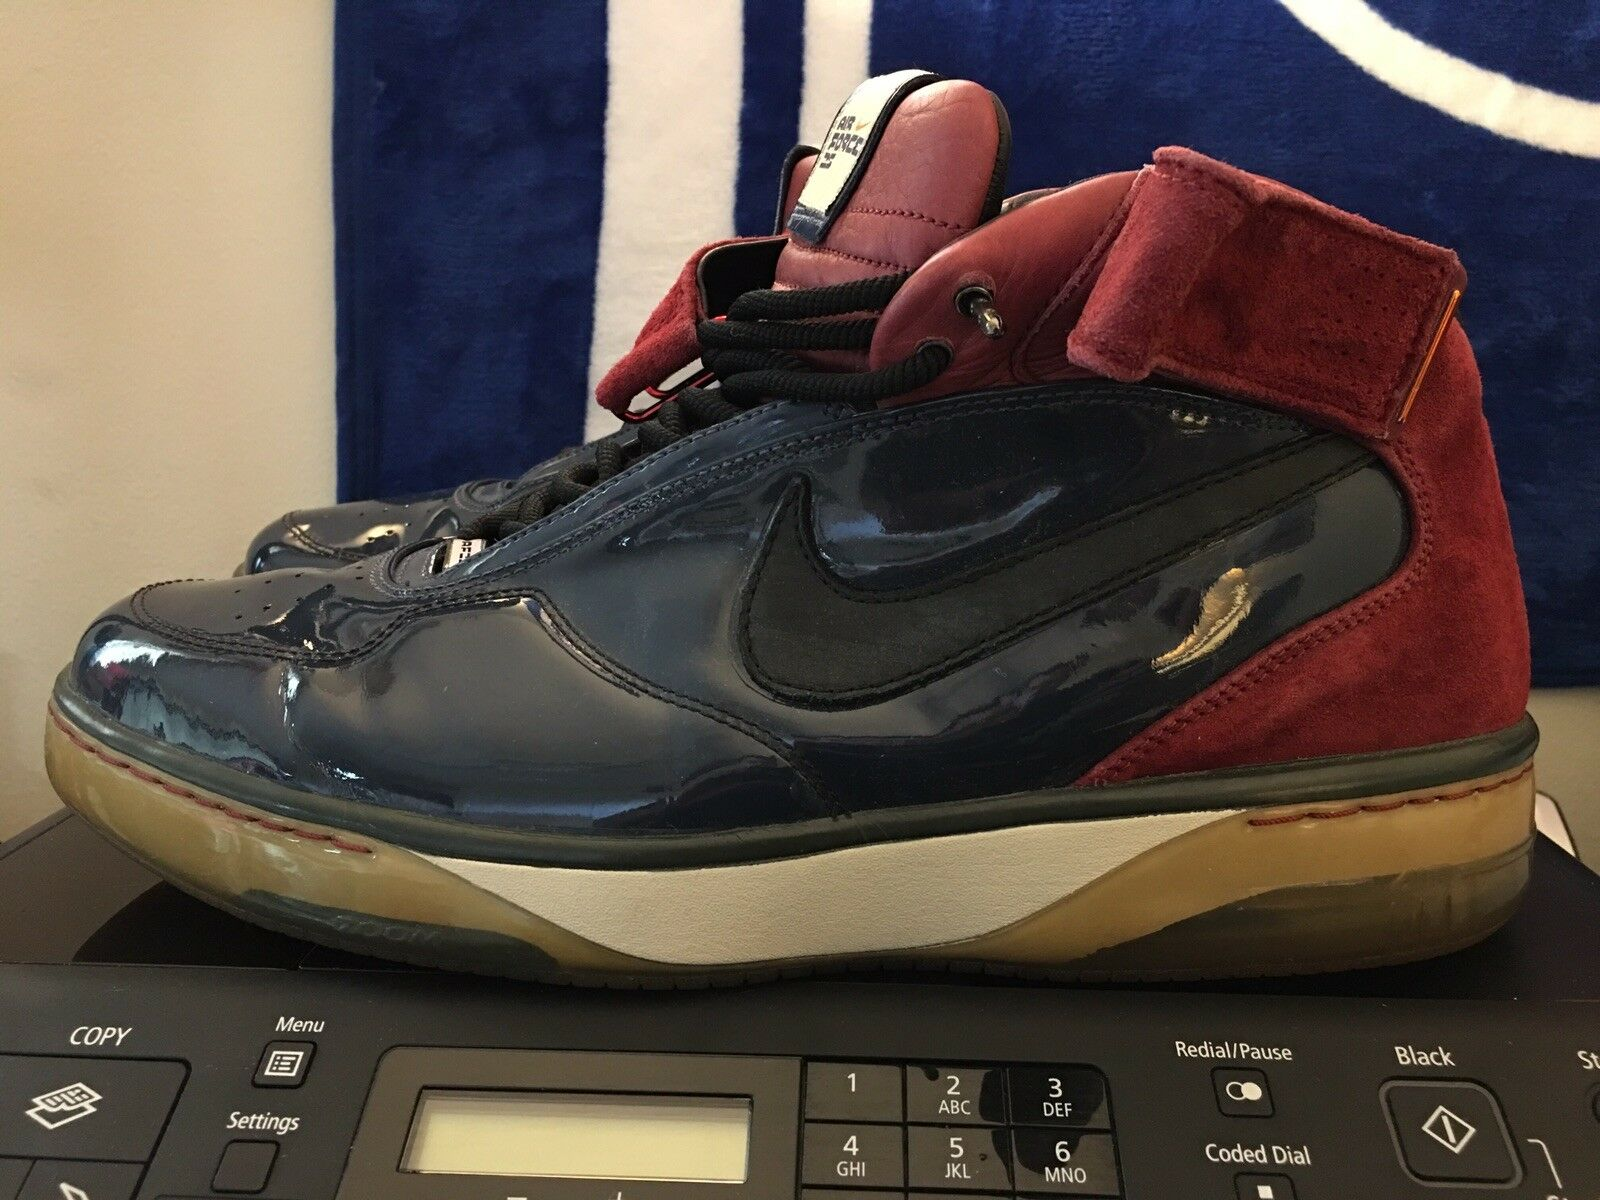 Nike Air force 25 AF25, 316881-401, Navy Maroon, Men's Basketball shoes, Size 14